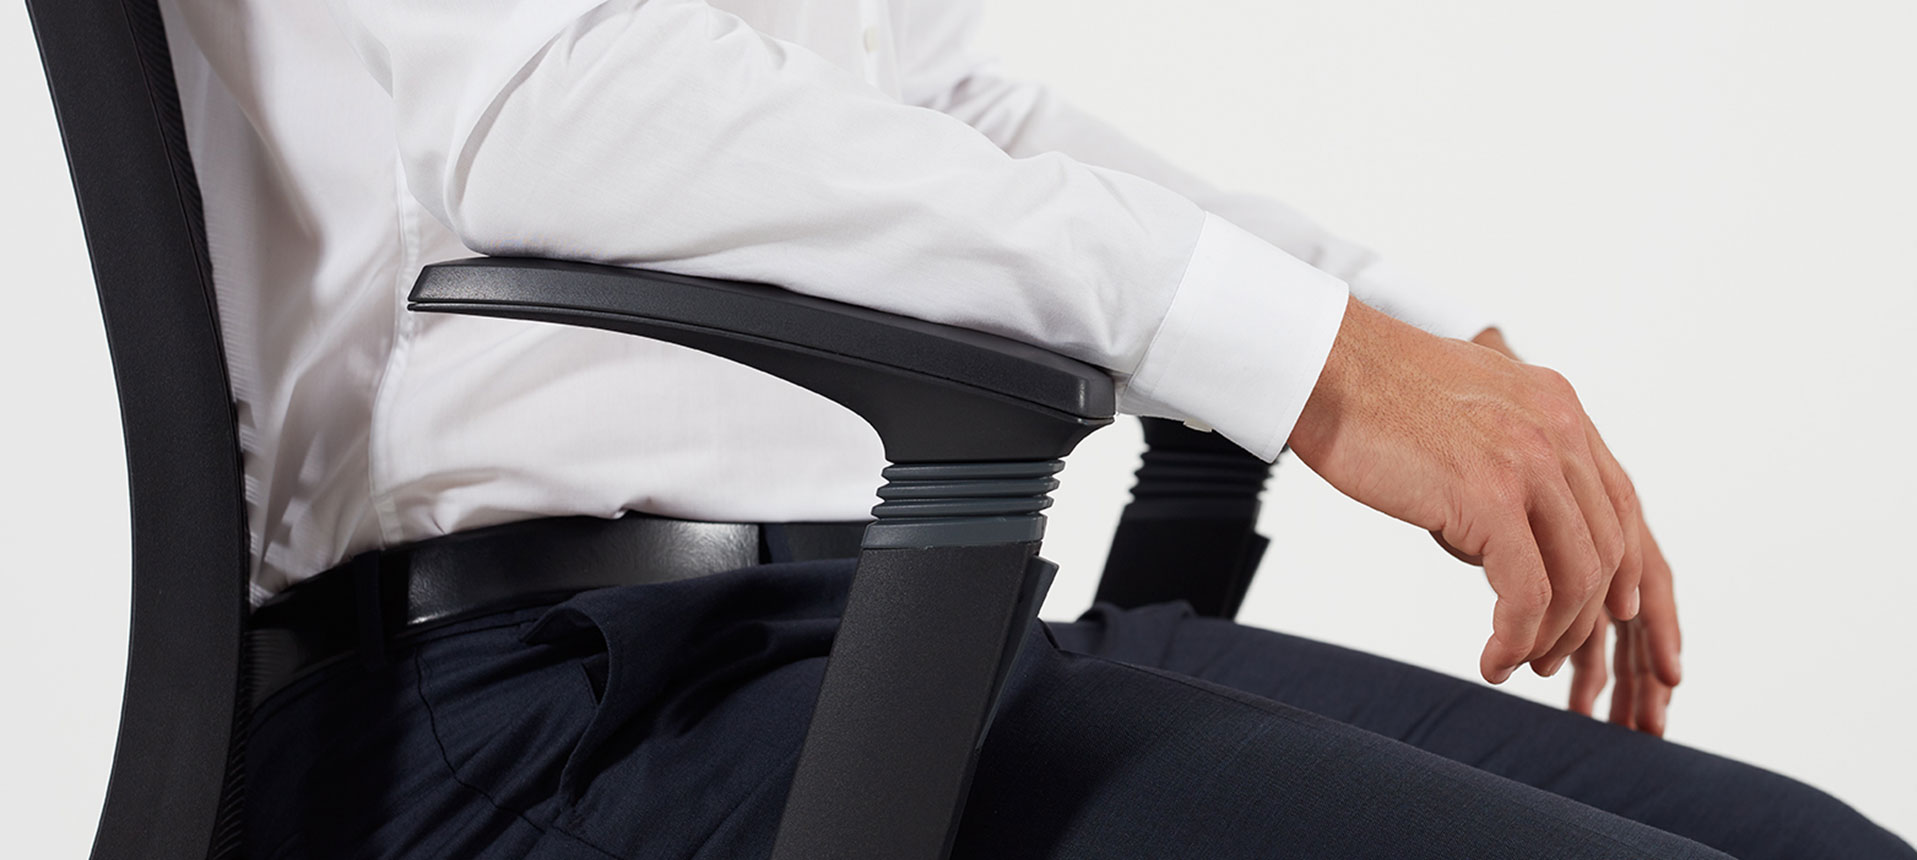 The Innovation Of Auto Flow Supportive Armrests For An Optimum Office Chair